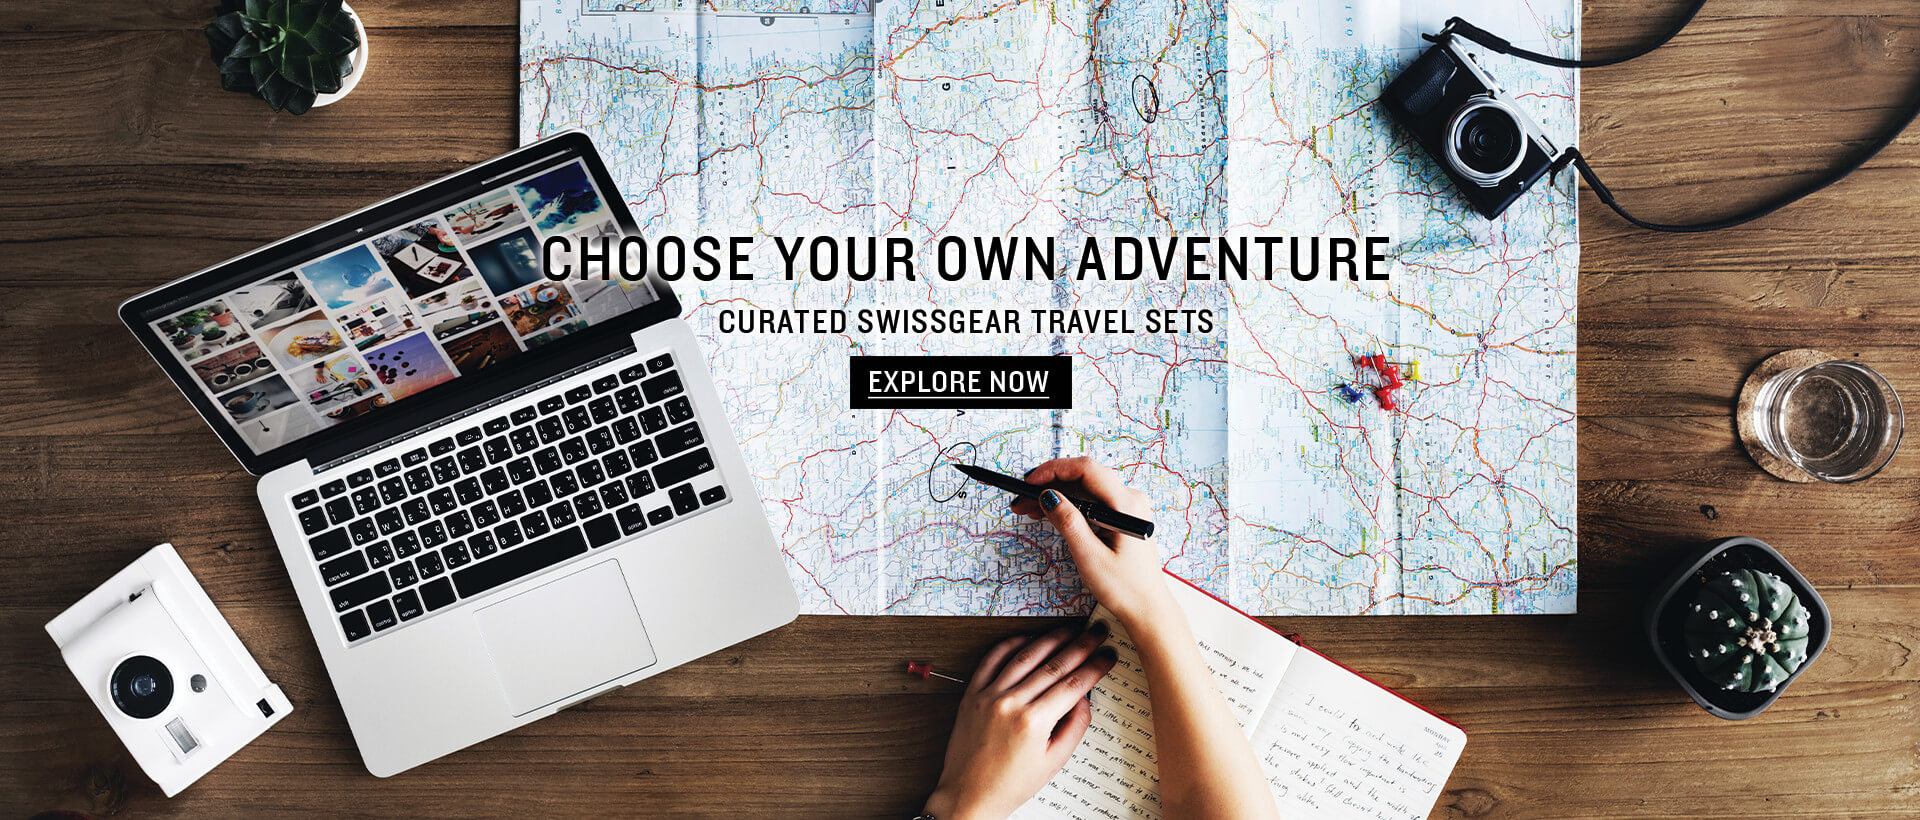 Choose Your Own Adventure by SWISSGEAR